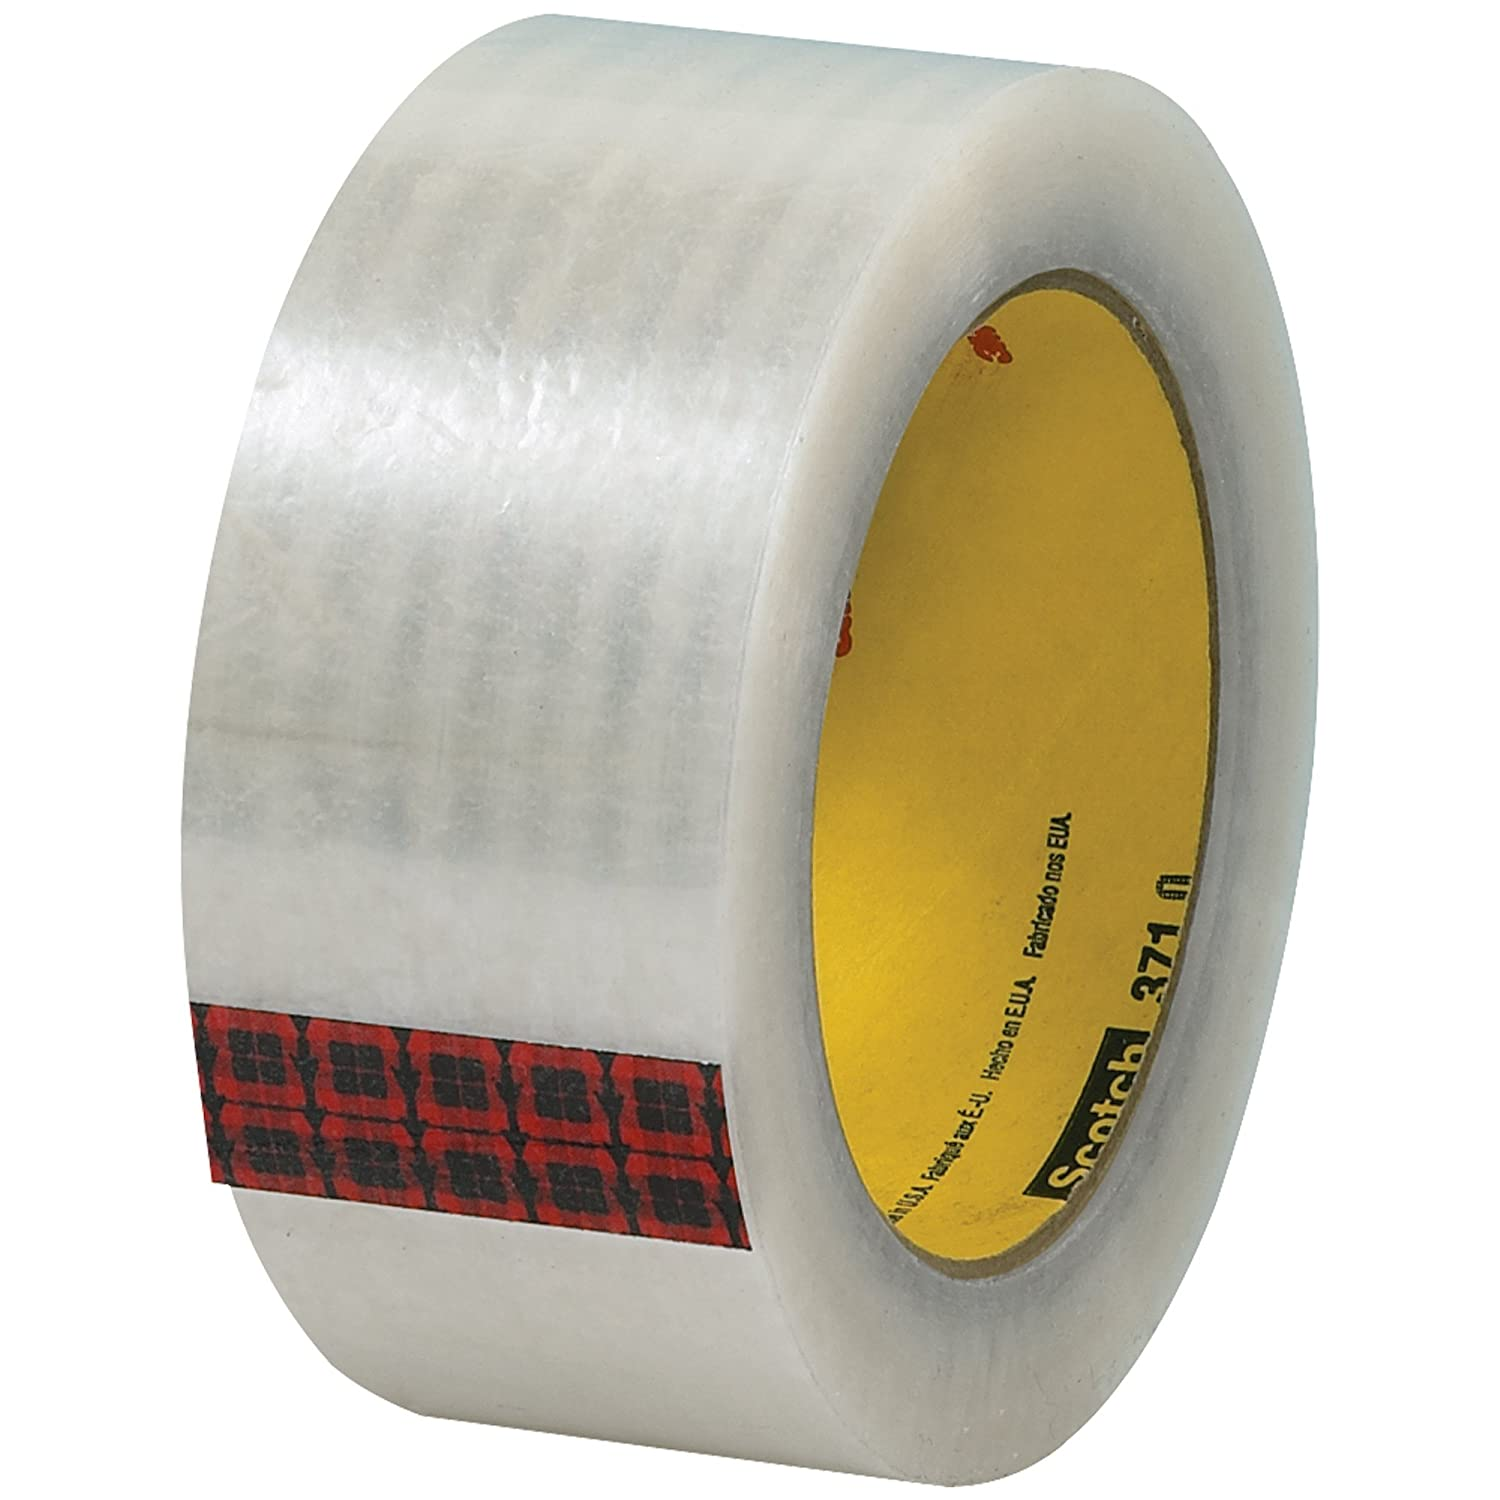 Scotch Carton Sealing Tape Clear Pack of 6 2 x 110 yd T9023716PK